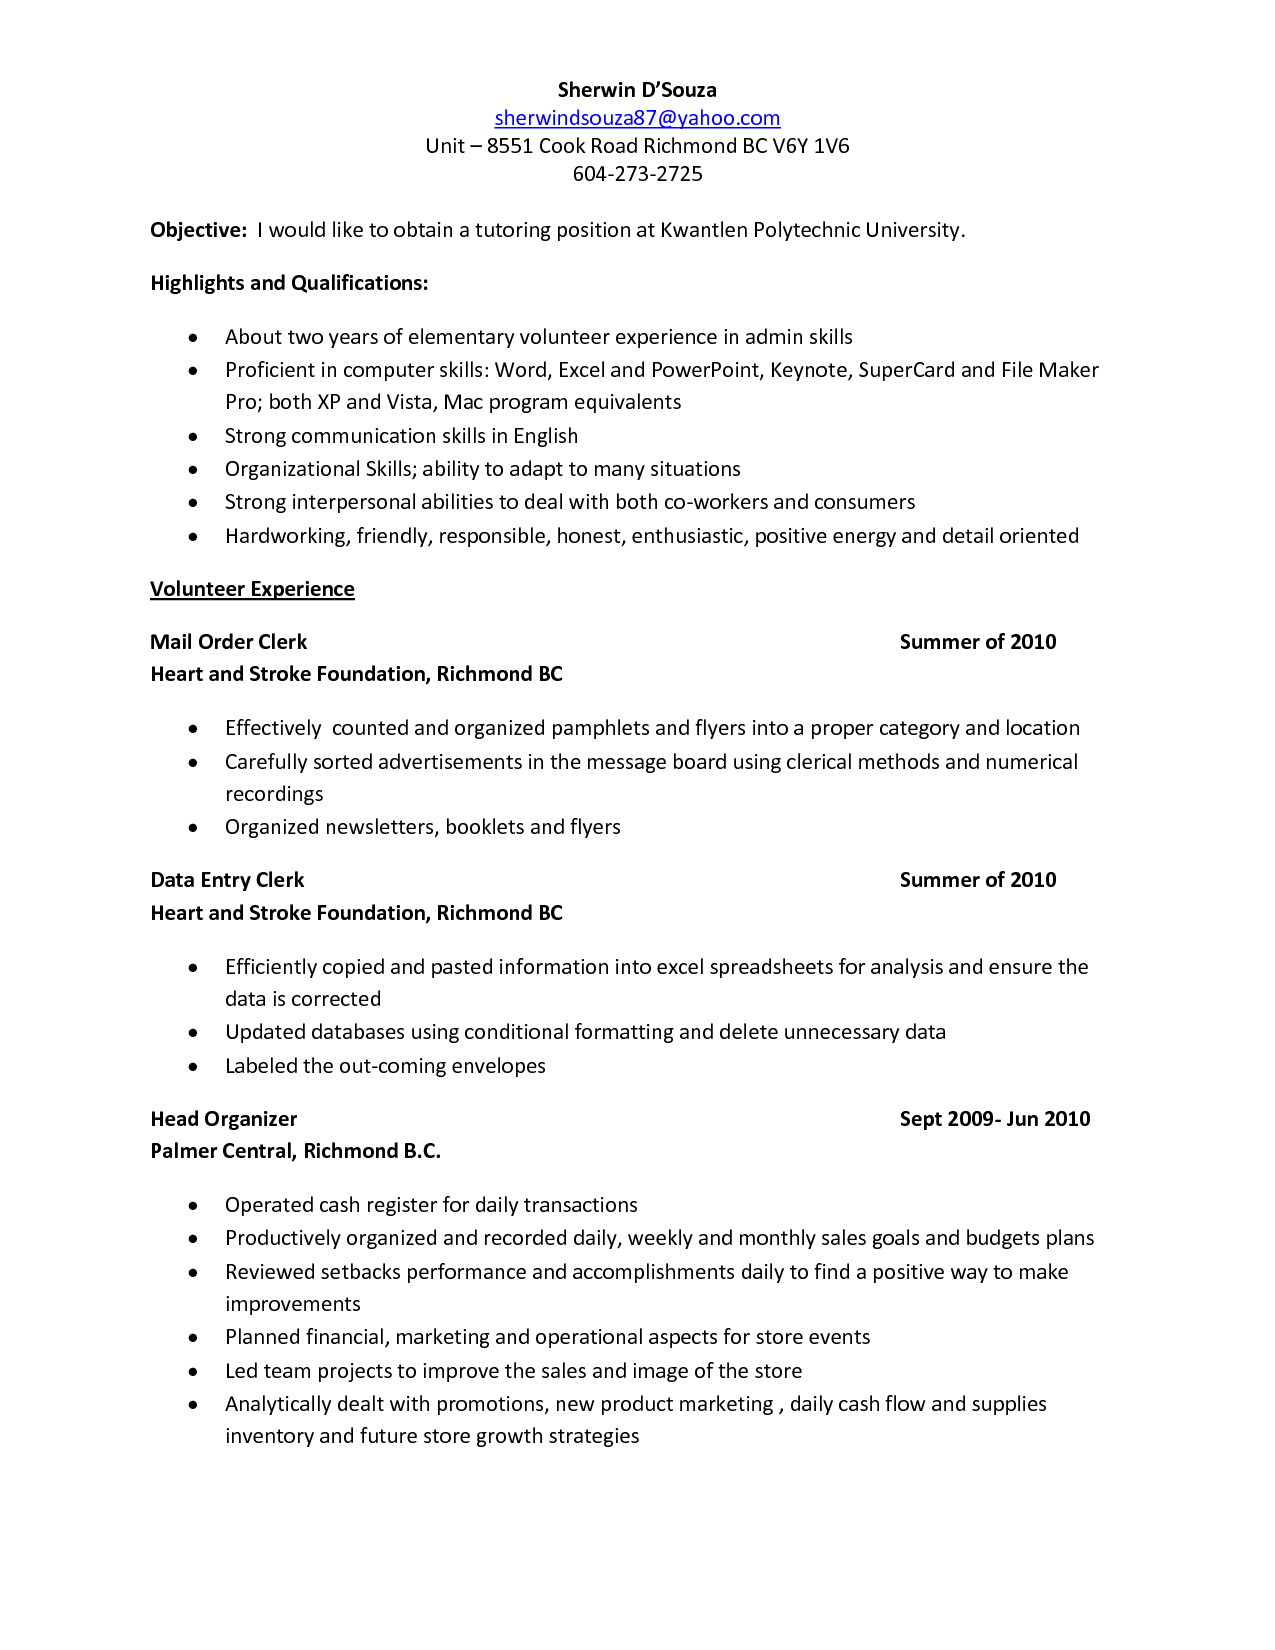 Tutor resume template sample fresh depiction sherwin kpu tutoring